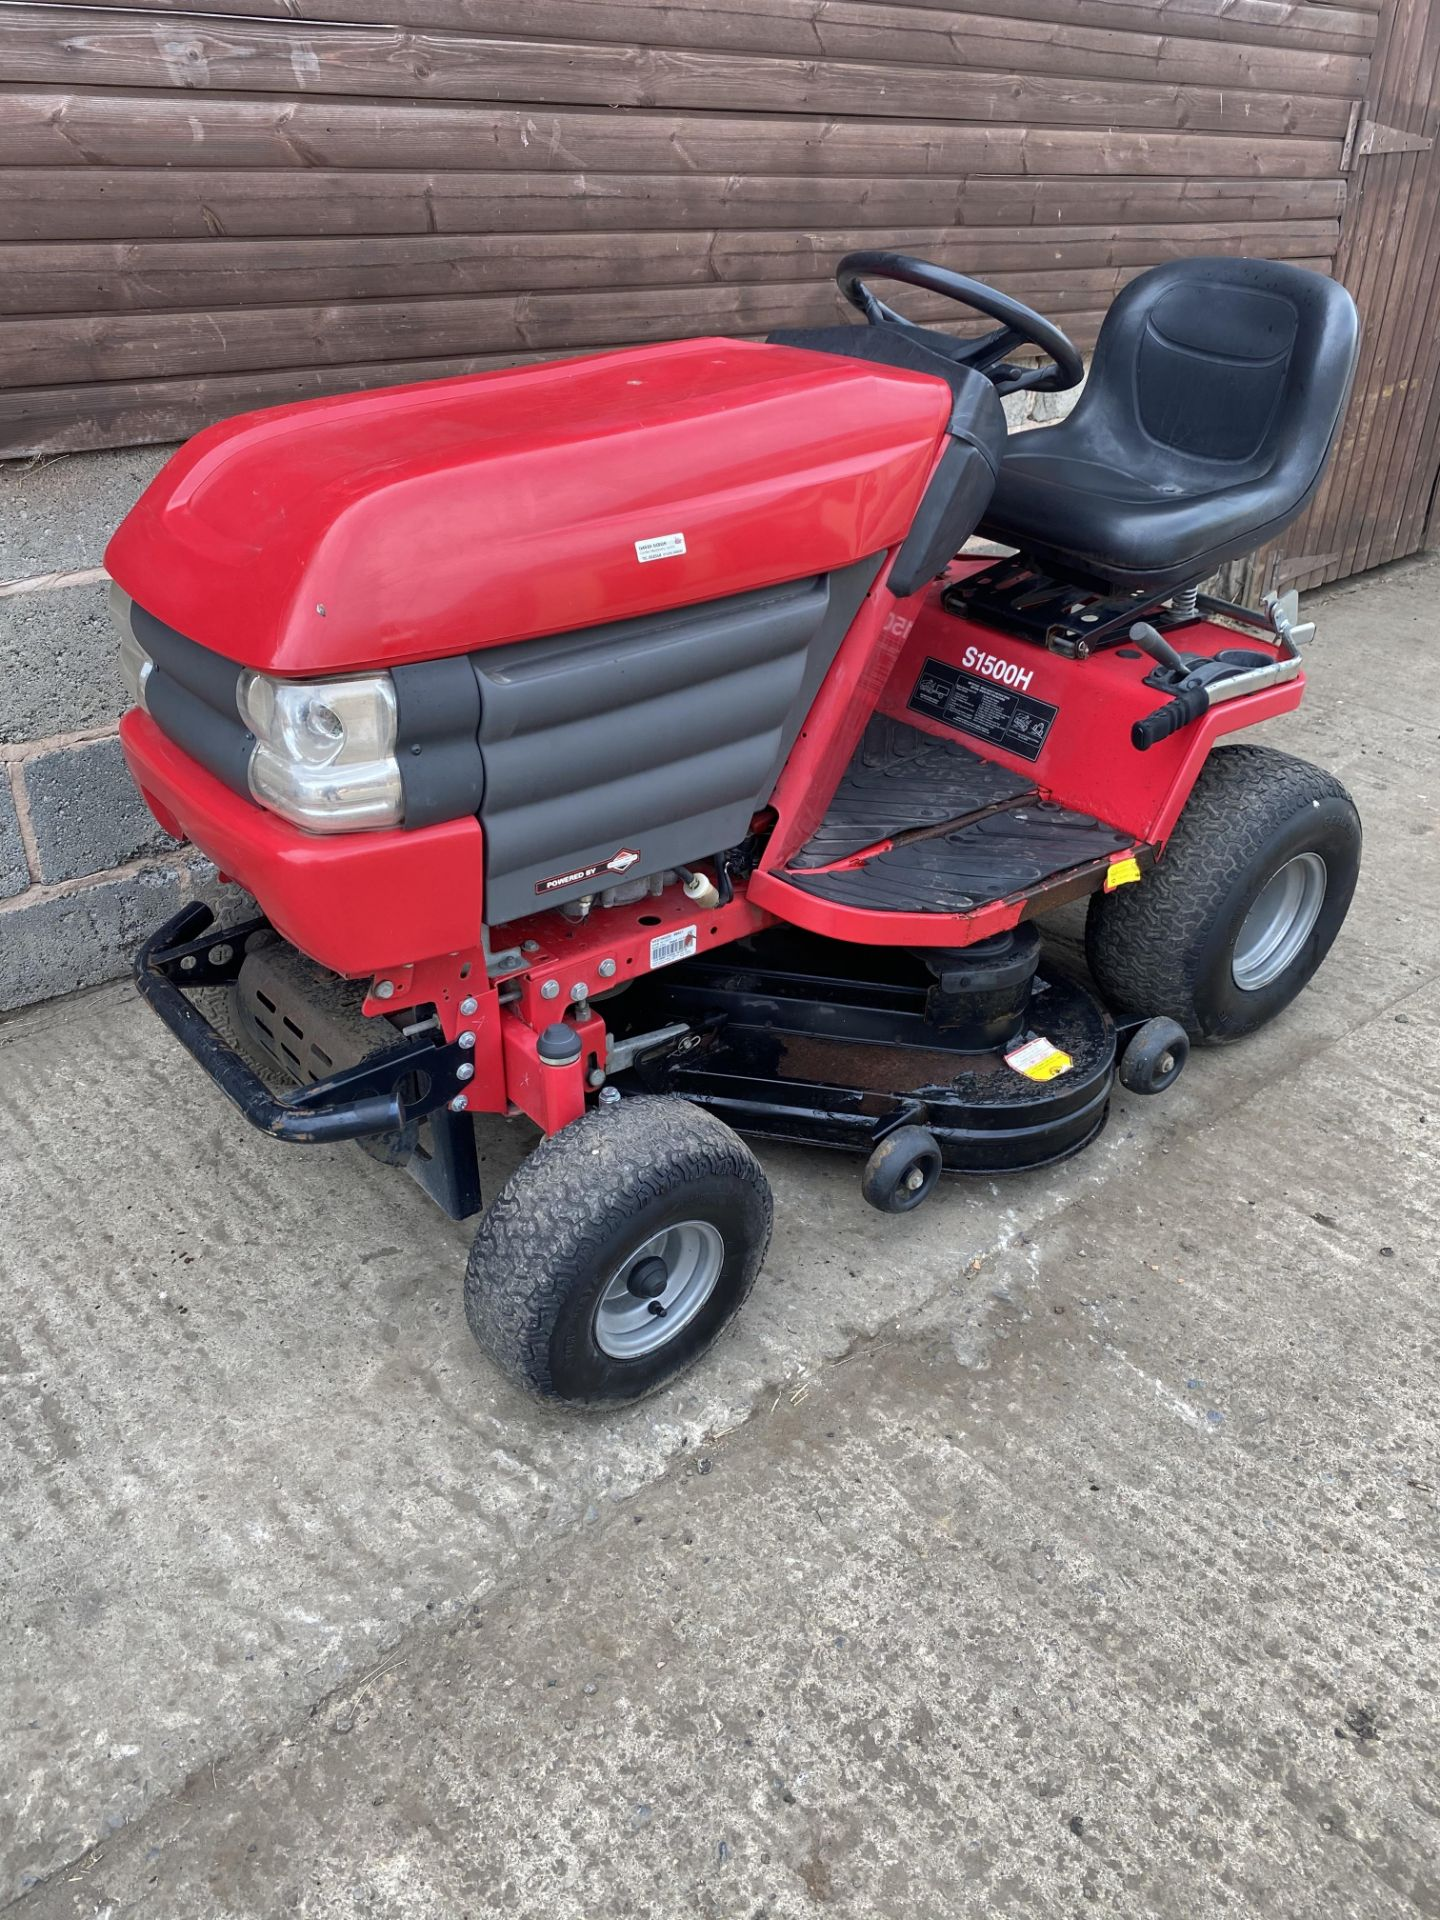 WESTWOOD S1500 RIDE ON LAWN MOWER, STARTS, RUNS AND DRIVES, HYDROSTATIC DRIVE *PLUS VAT* - Image 2 of 4